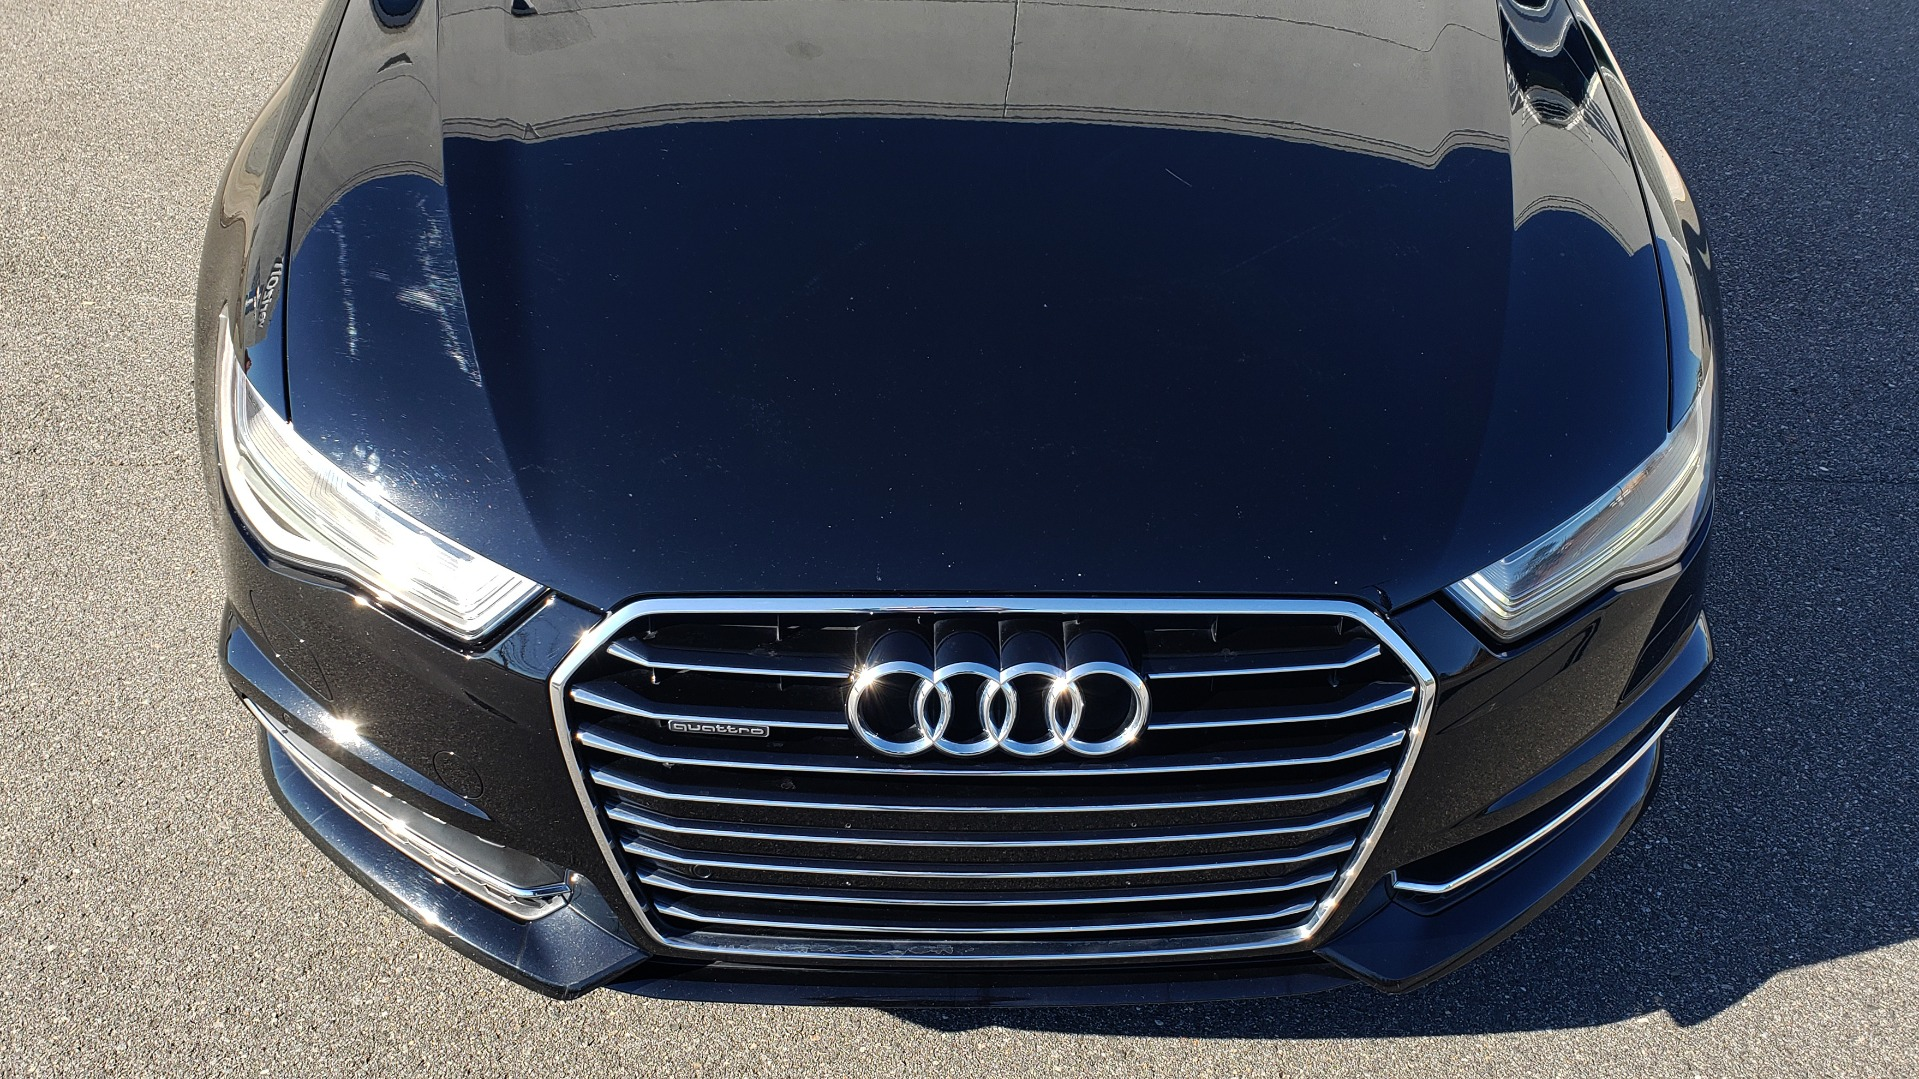 Used 2016 Audi A6 2.0T PREMIUM PLUS / NAV / S-LINE / CLD WTHR / SUNROOF for sale Sold at Formula Imports in Charlotte NC 28227 21